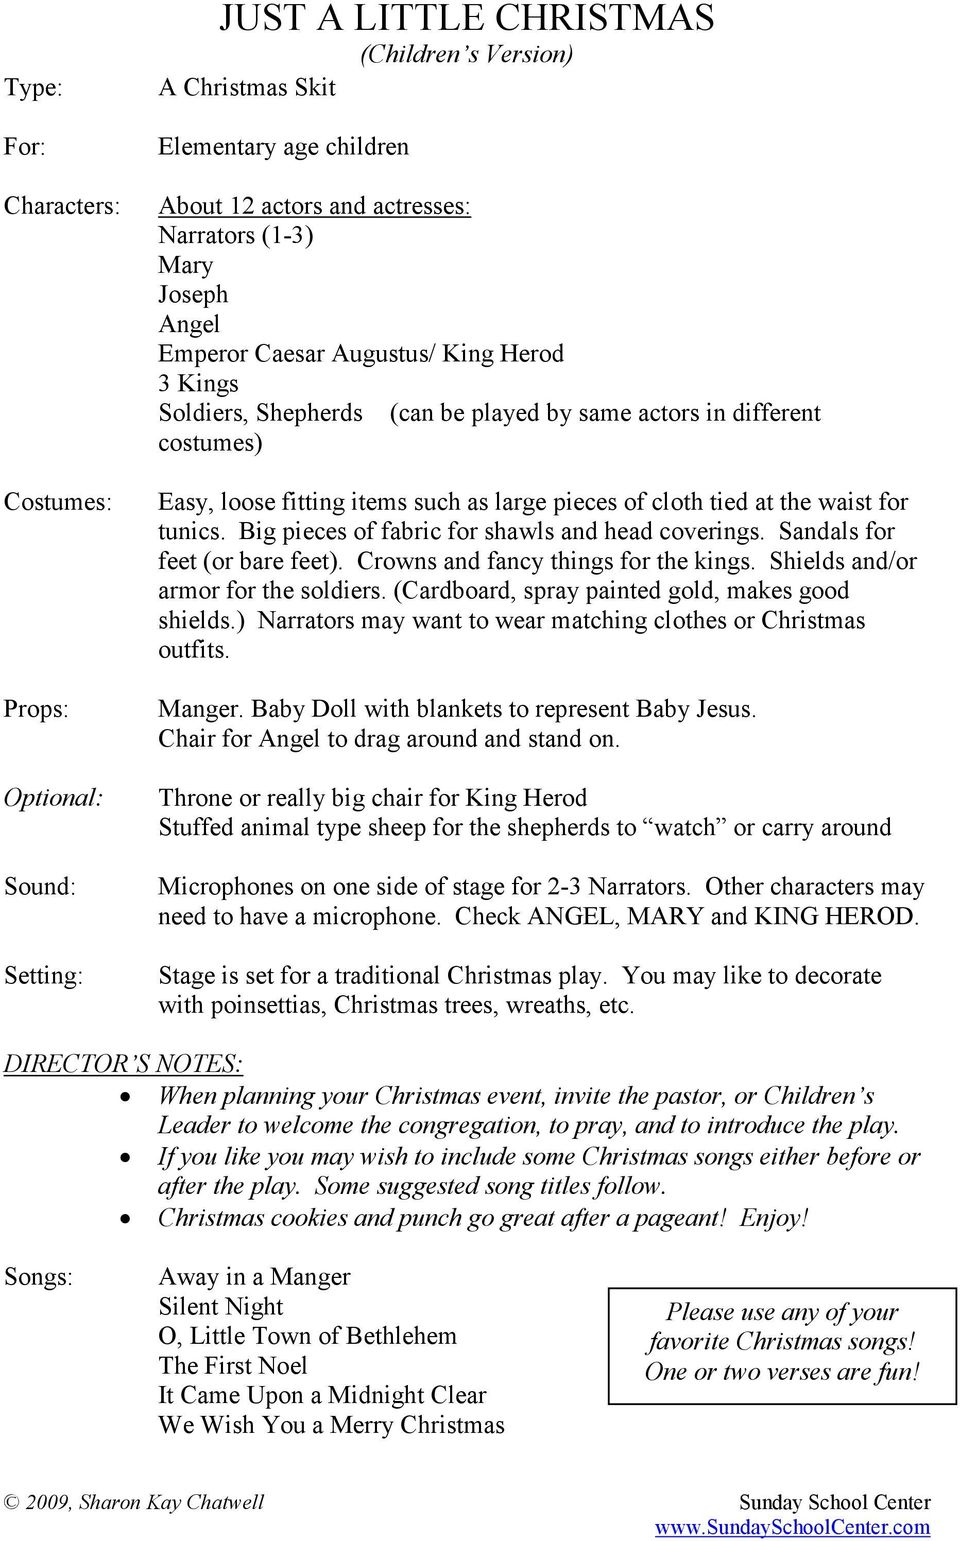 JUST A LITTLE CHRISTMAS - PDF